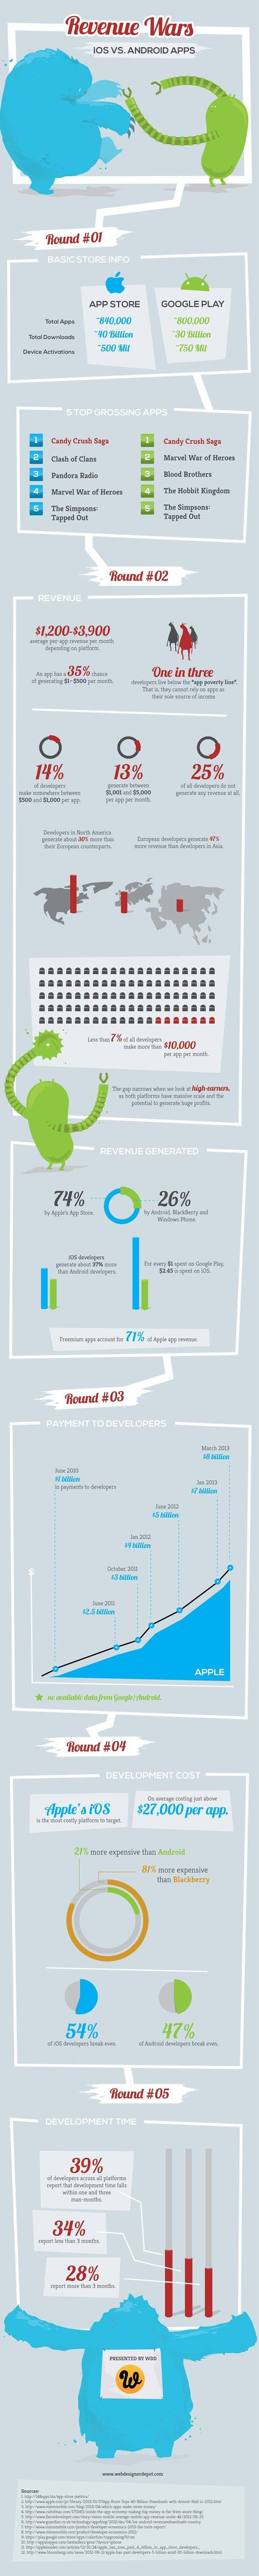 iOS vs Android | Mobile and apps | Scoop.it